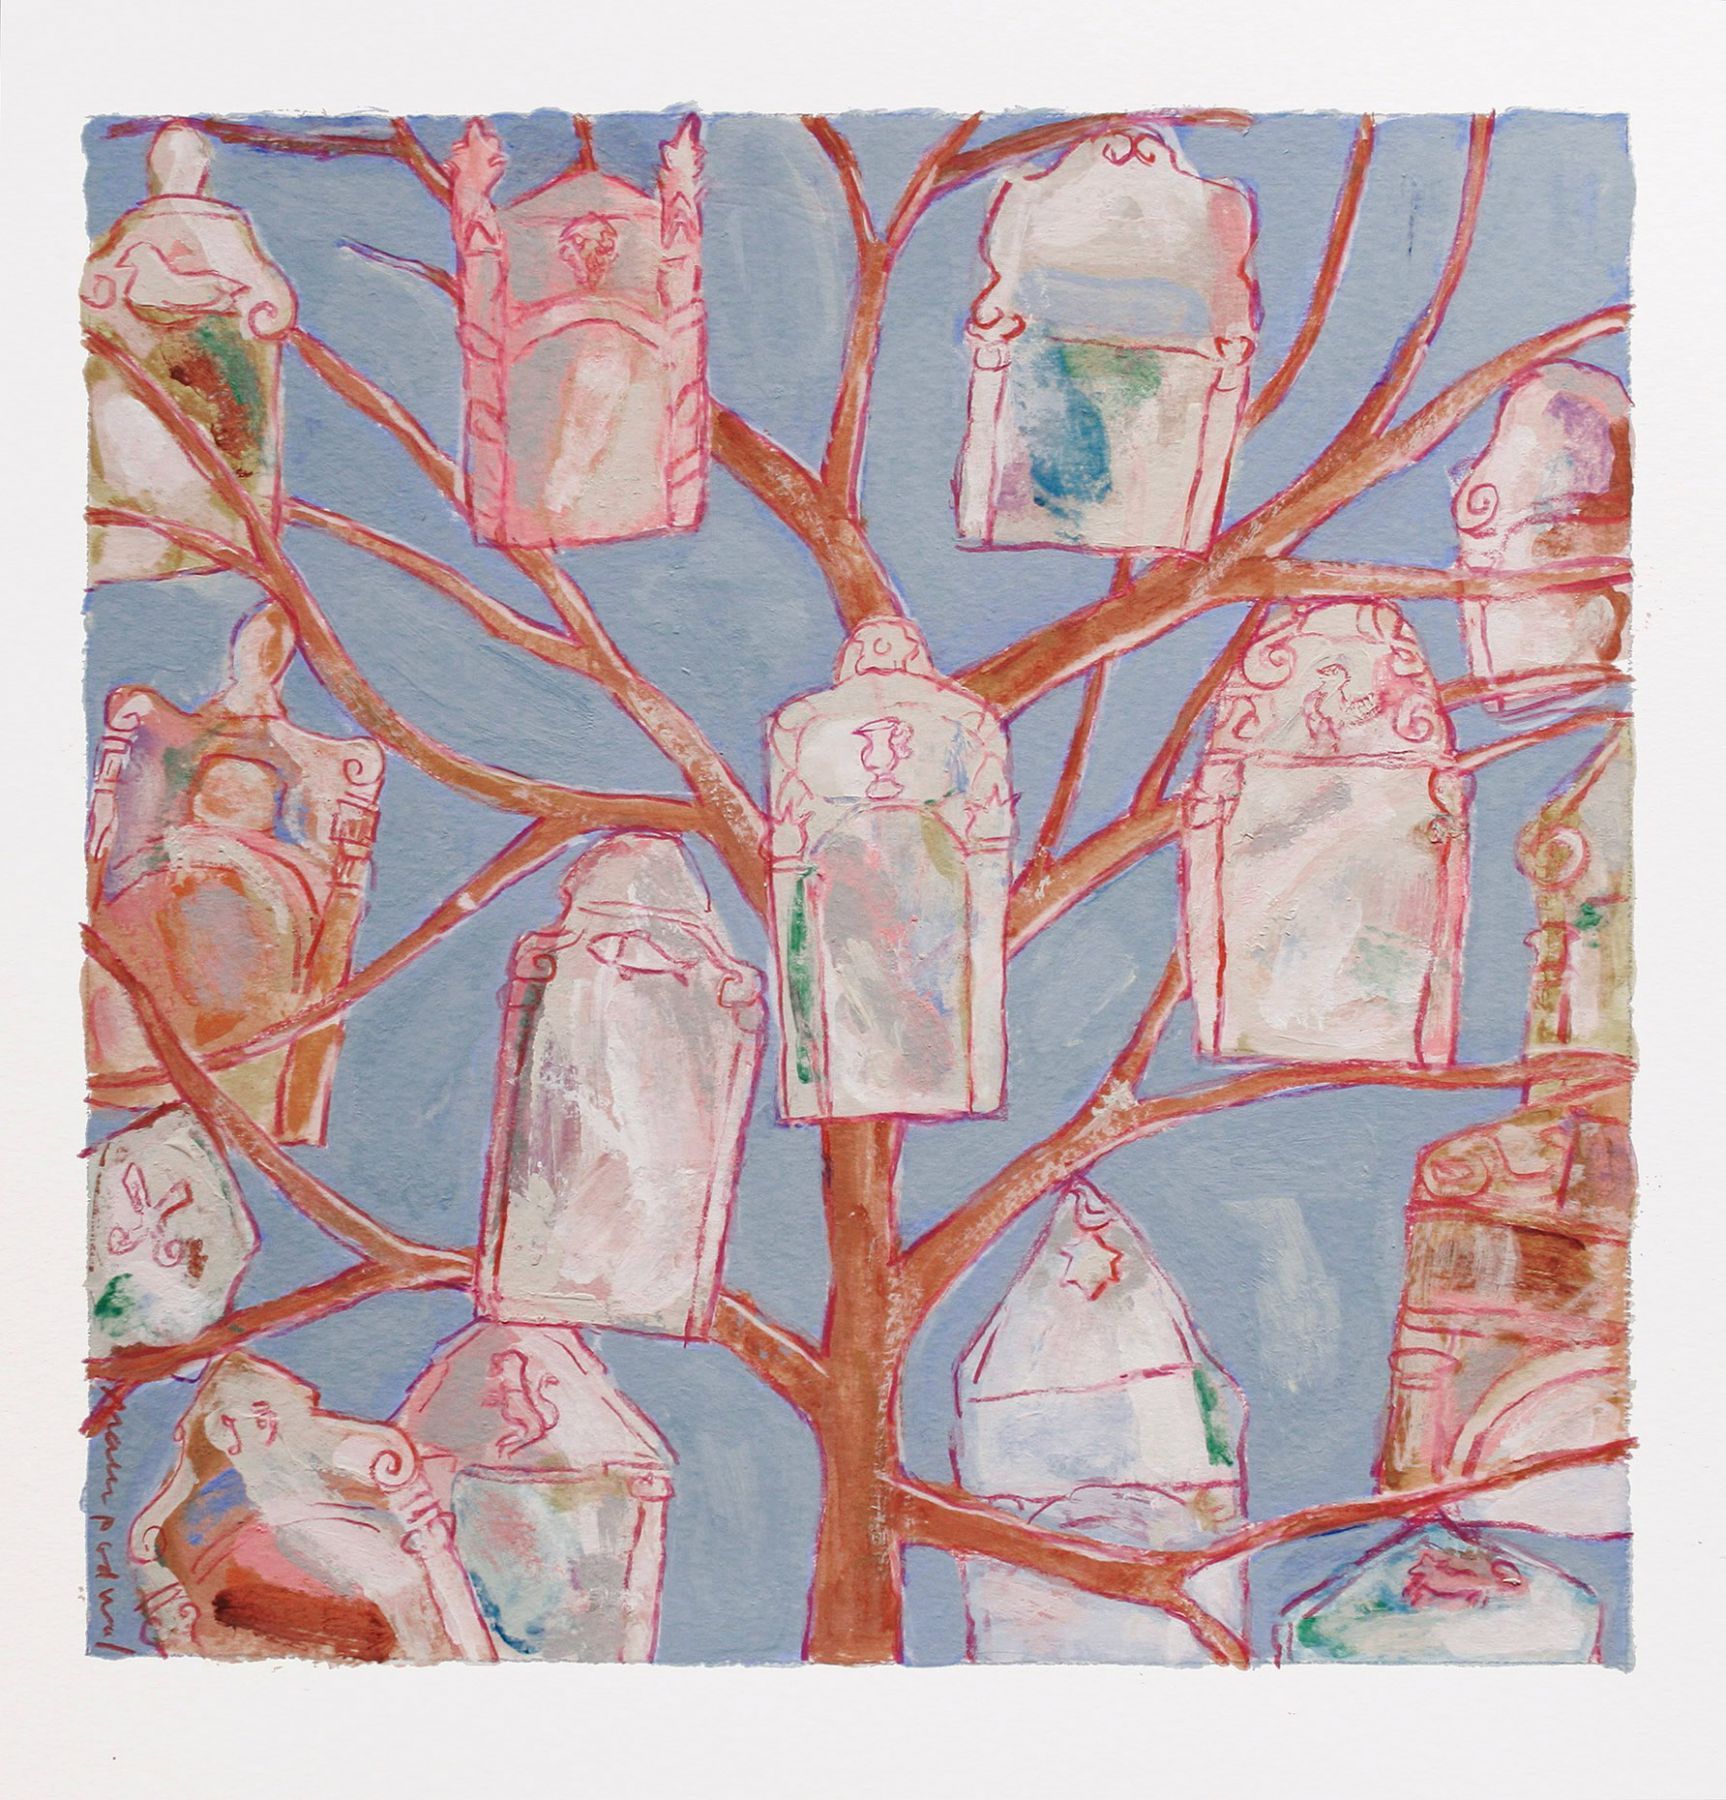 Mark Podwal, Ancestors, 2008, acrylic, gouache and colored pencil on paper, 12 x 12 inches